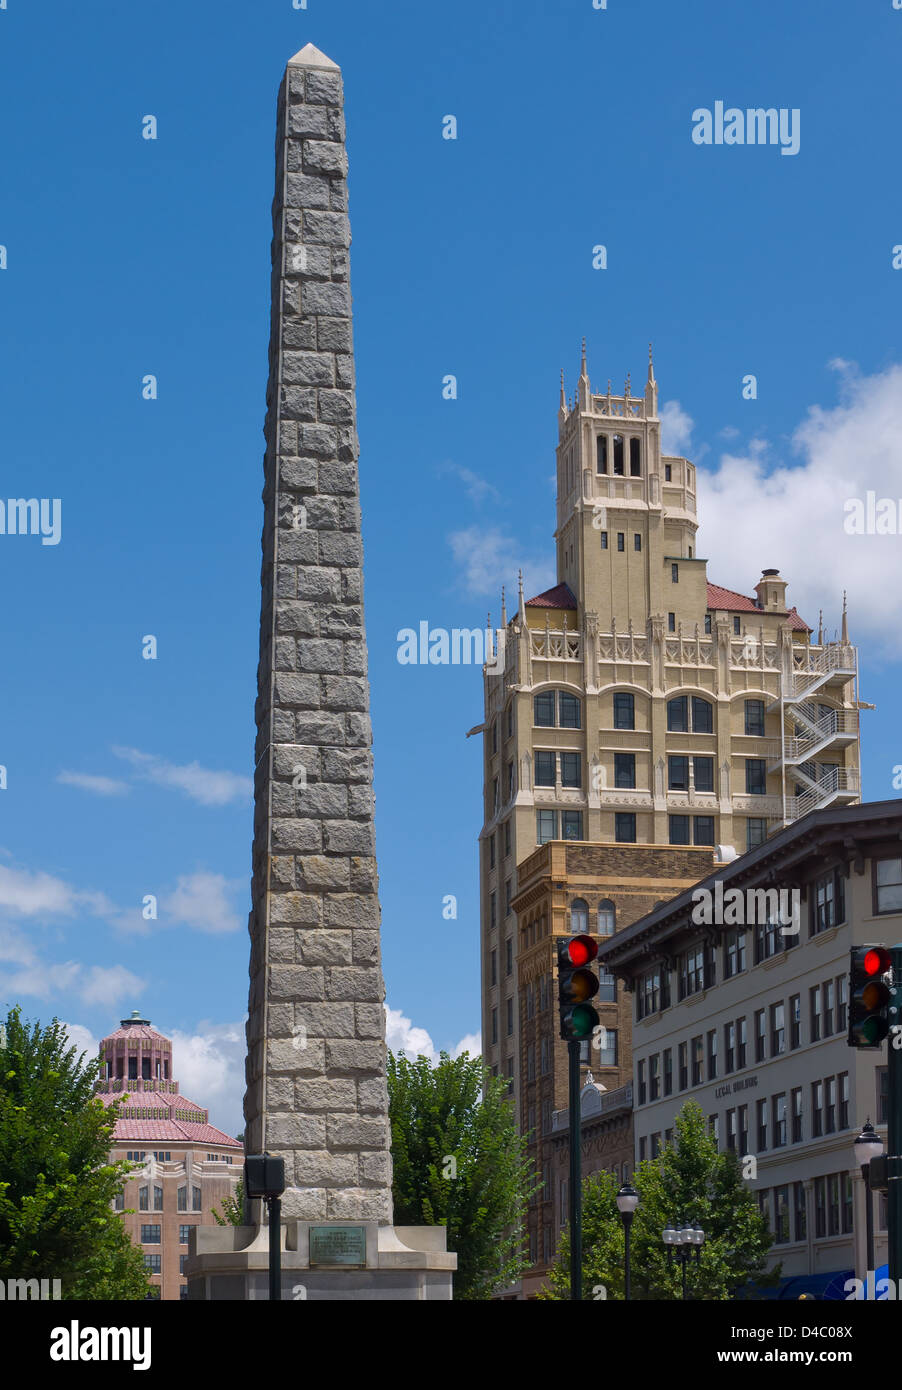 View of historic buildings in downtown Asheville, North Carolina. - Stock Image